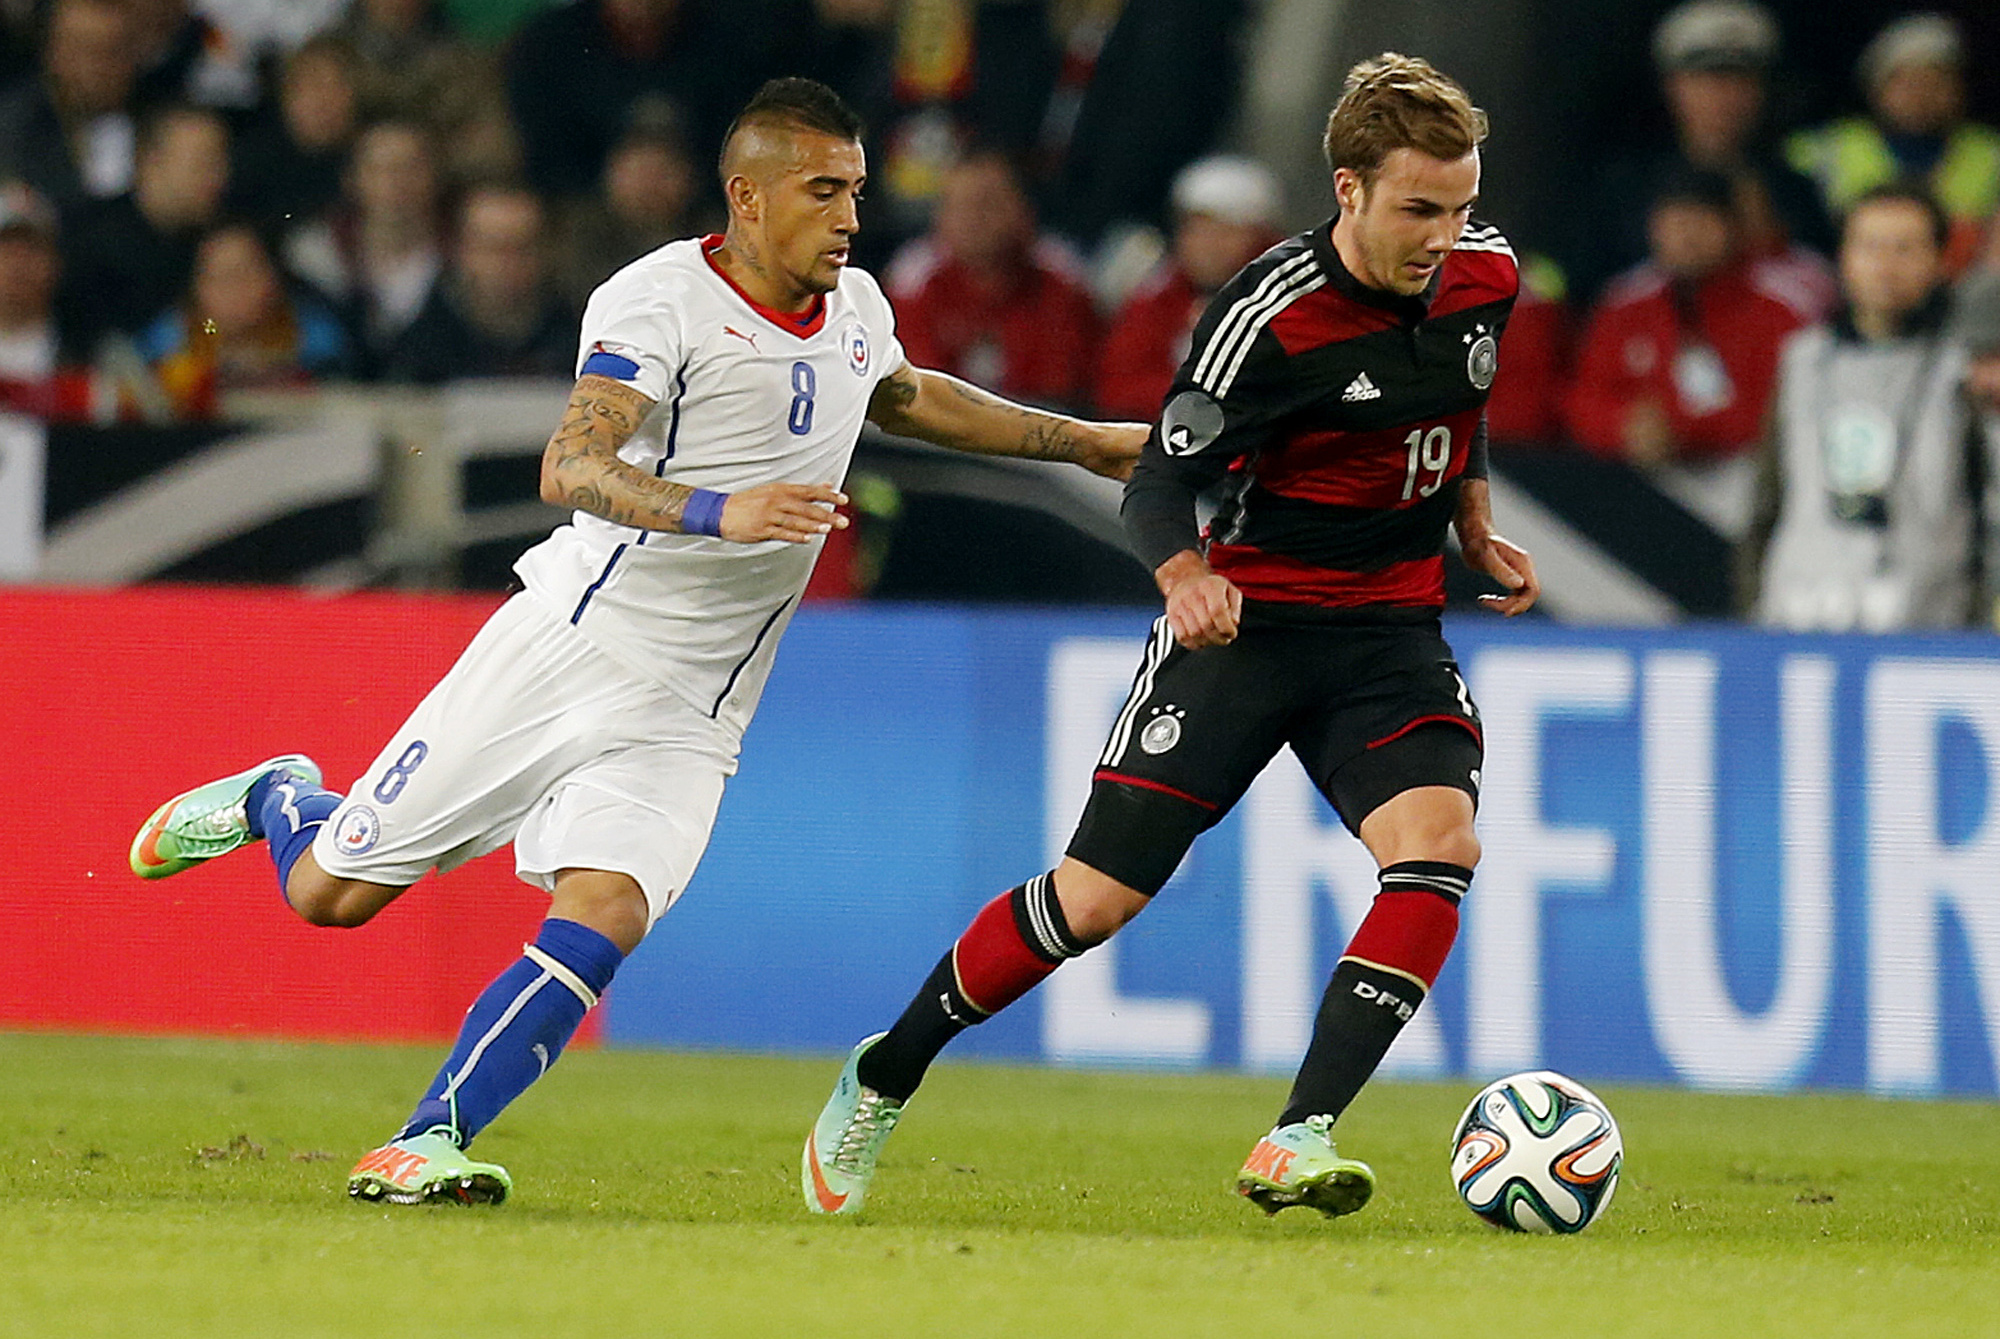 Germany Vs Chile Score Grades And Post Match Reaction Bleacher Report Latest News Videos And Highlights